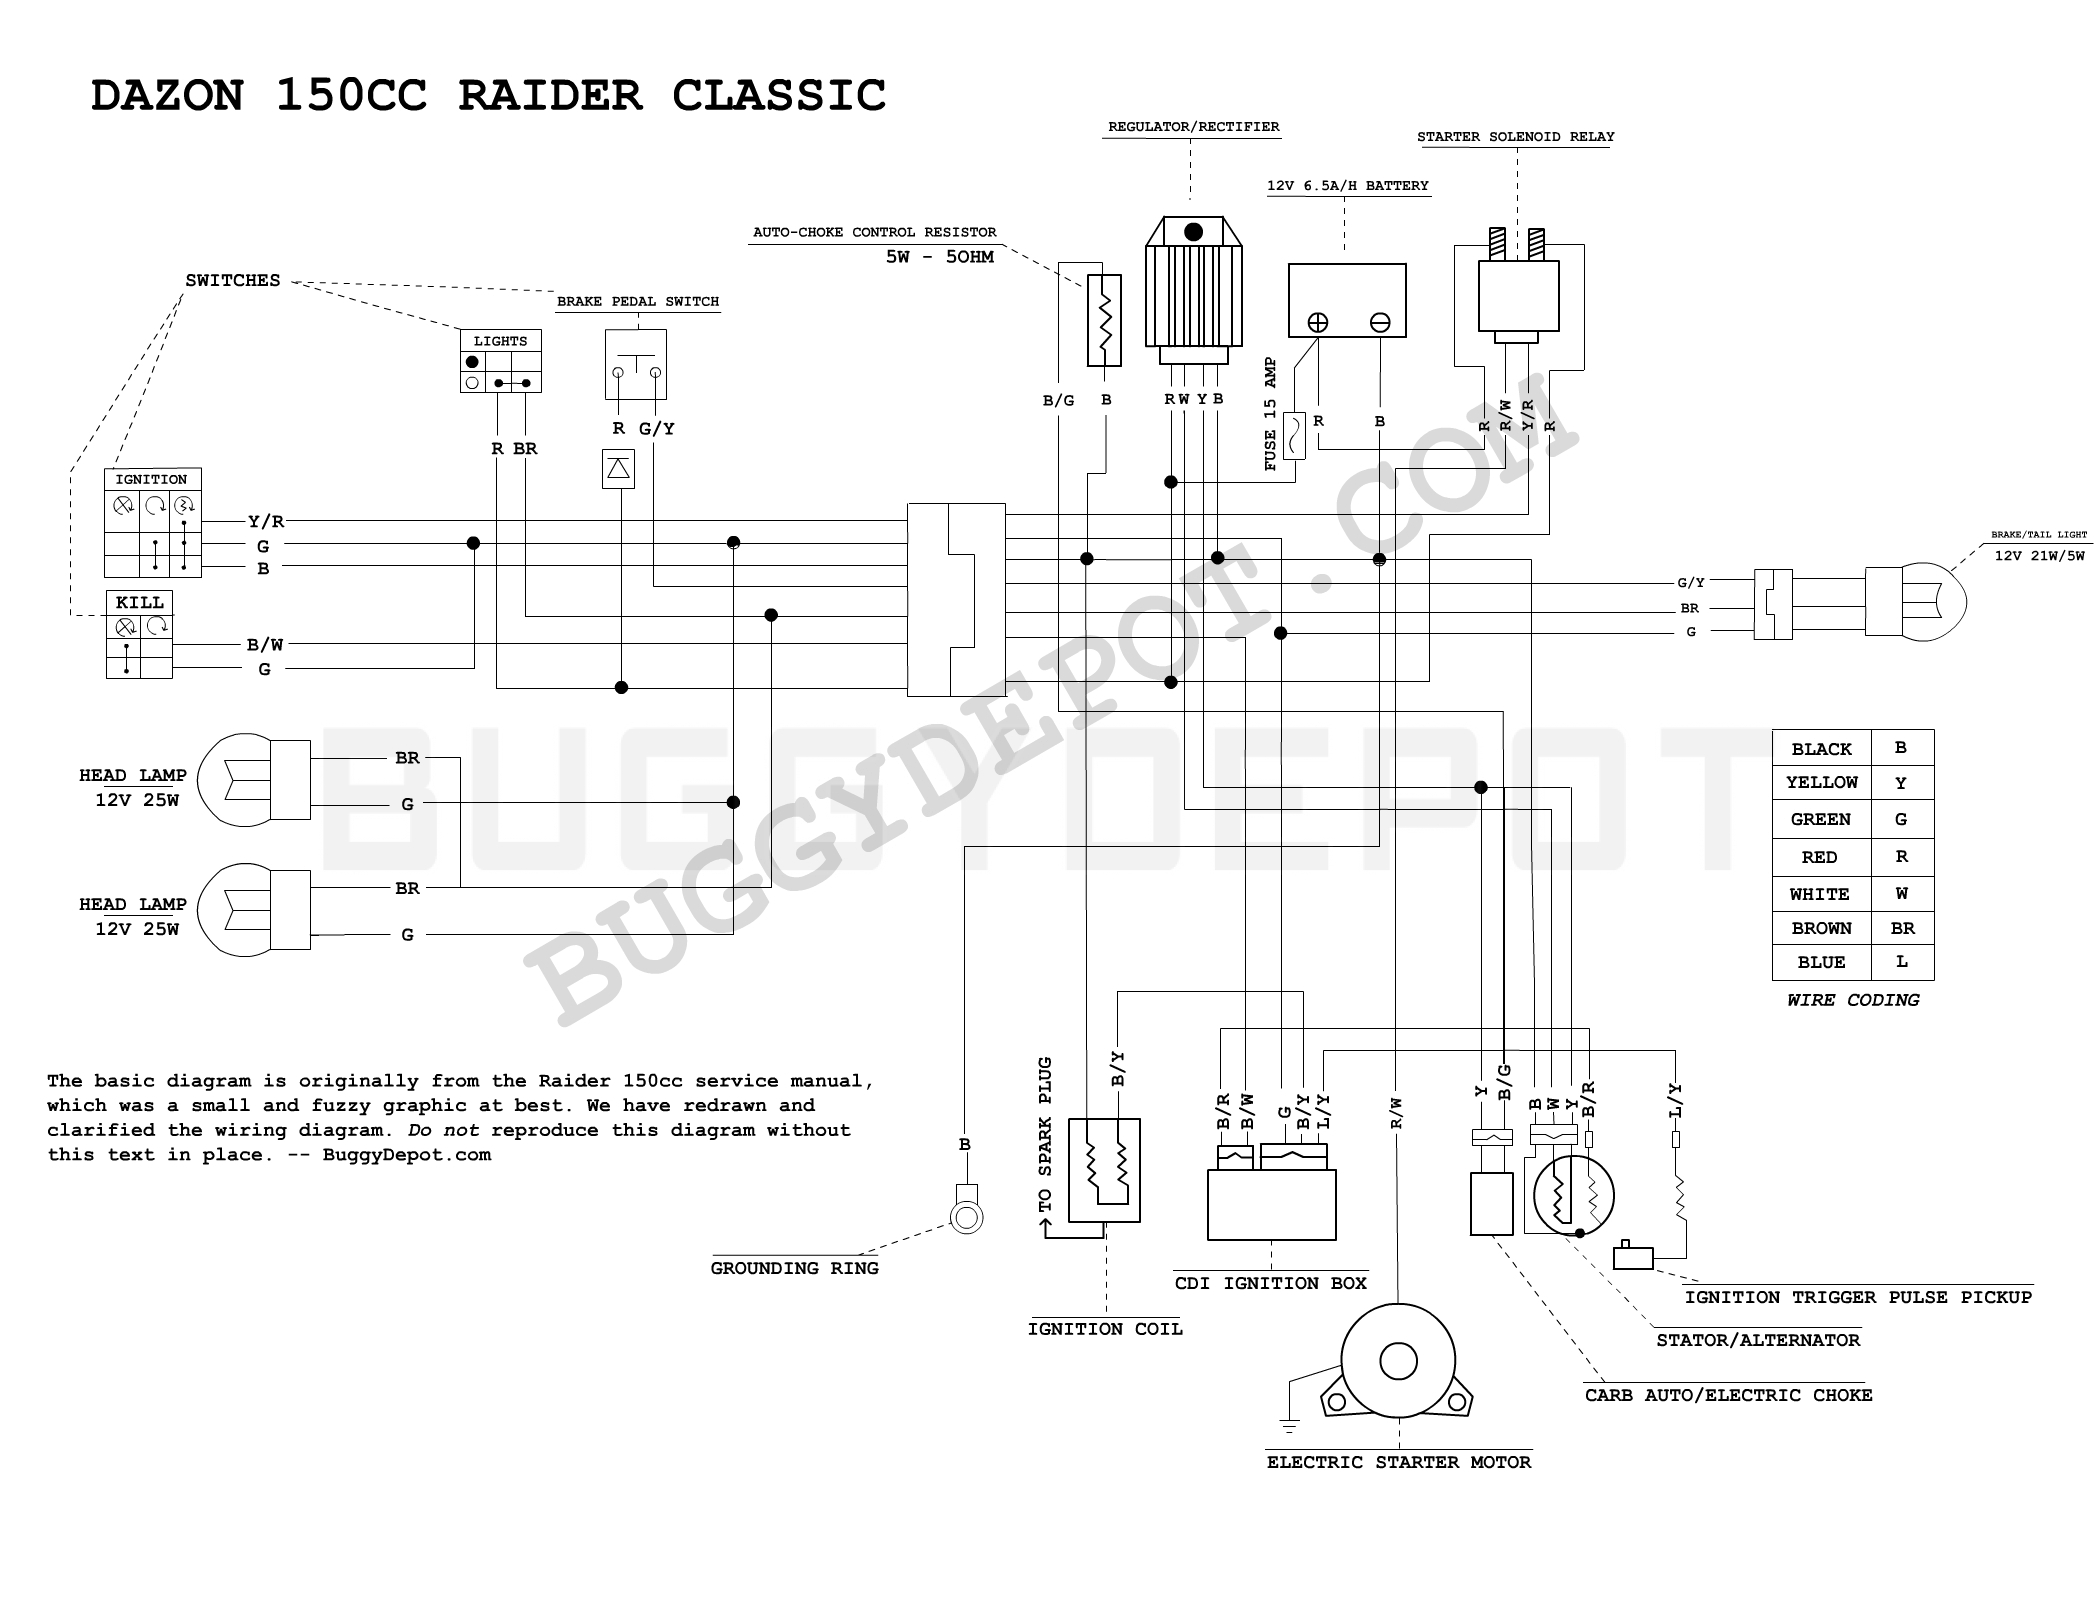 Yerf Dog Engine Diagram - Wiring Diagram List Hammerhead Go Kart Wiring Diagram on gy6 150cc buggy wiring-diagram, hammerhead go karts cable, roketa buggy wiring-diagram, ezgo txt wiring-diagram, yerf dog spiderbox wiring-diagram, sunl 150cc buggy wiring-diagram, hammerhead gts 150cc engine wiring schematics, kinroad gy6 buggy wiring-diagram, hammerhead go karts 500cc, hammerhead 250 motor diagram, hammerhead go carts, hammerhead off-road go karts, hammerhead gt 150 carburetor replacement,